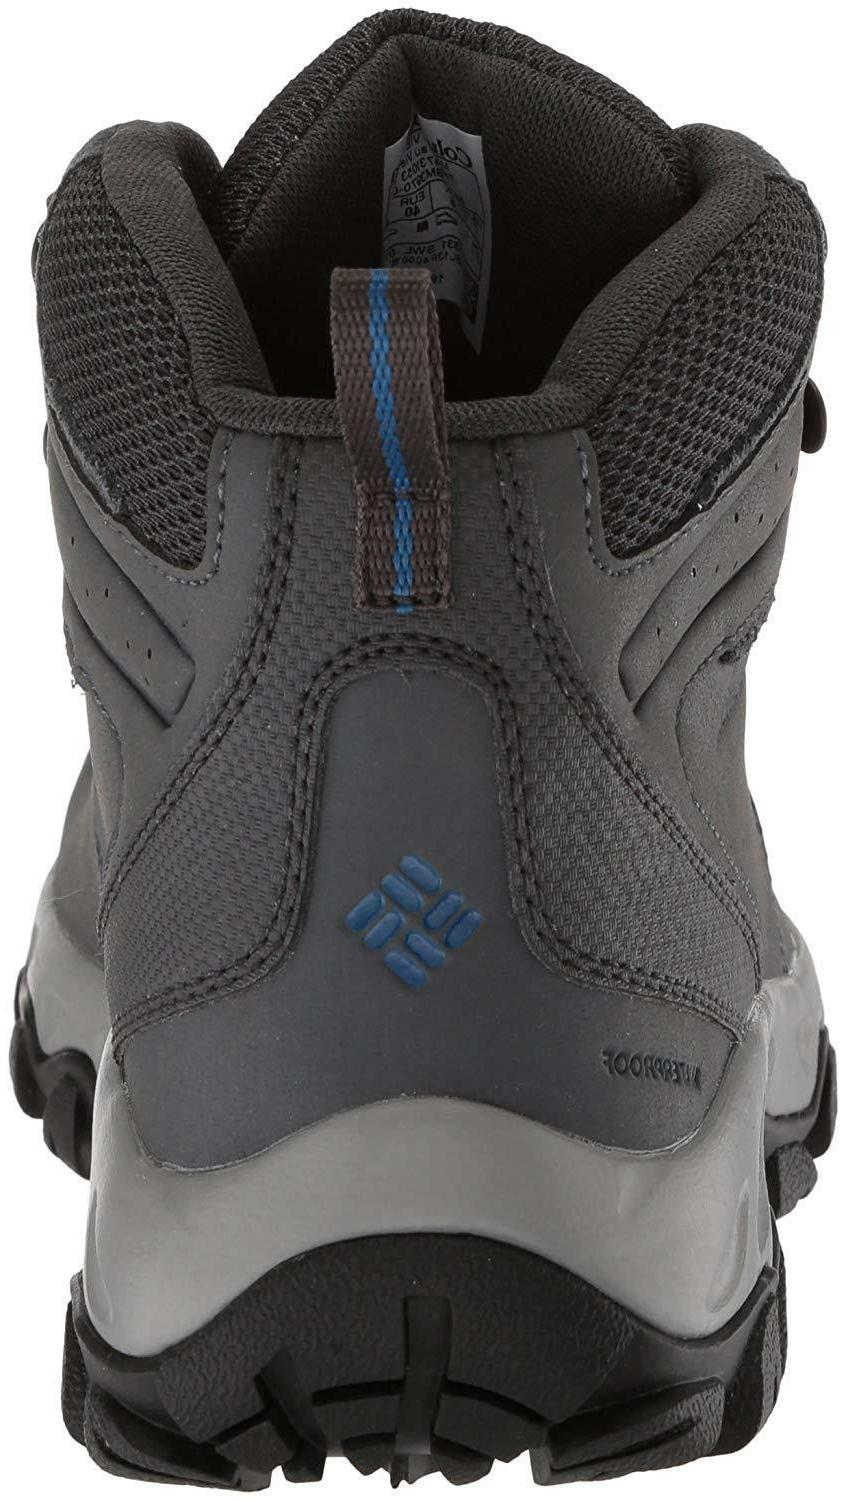 Plus II Hiking Boot